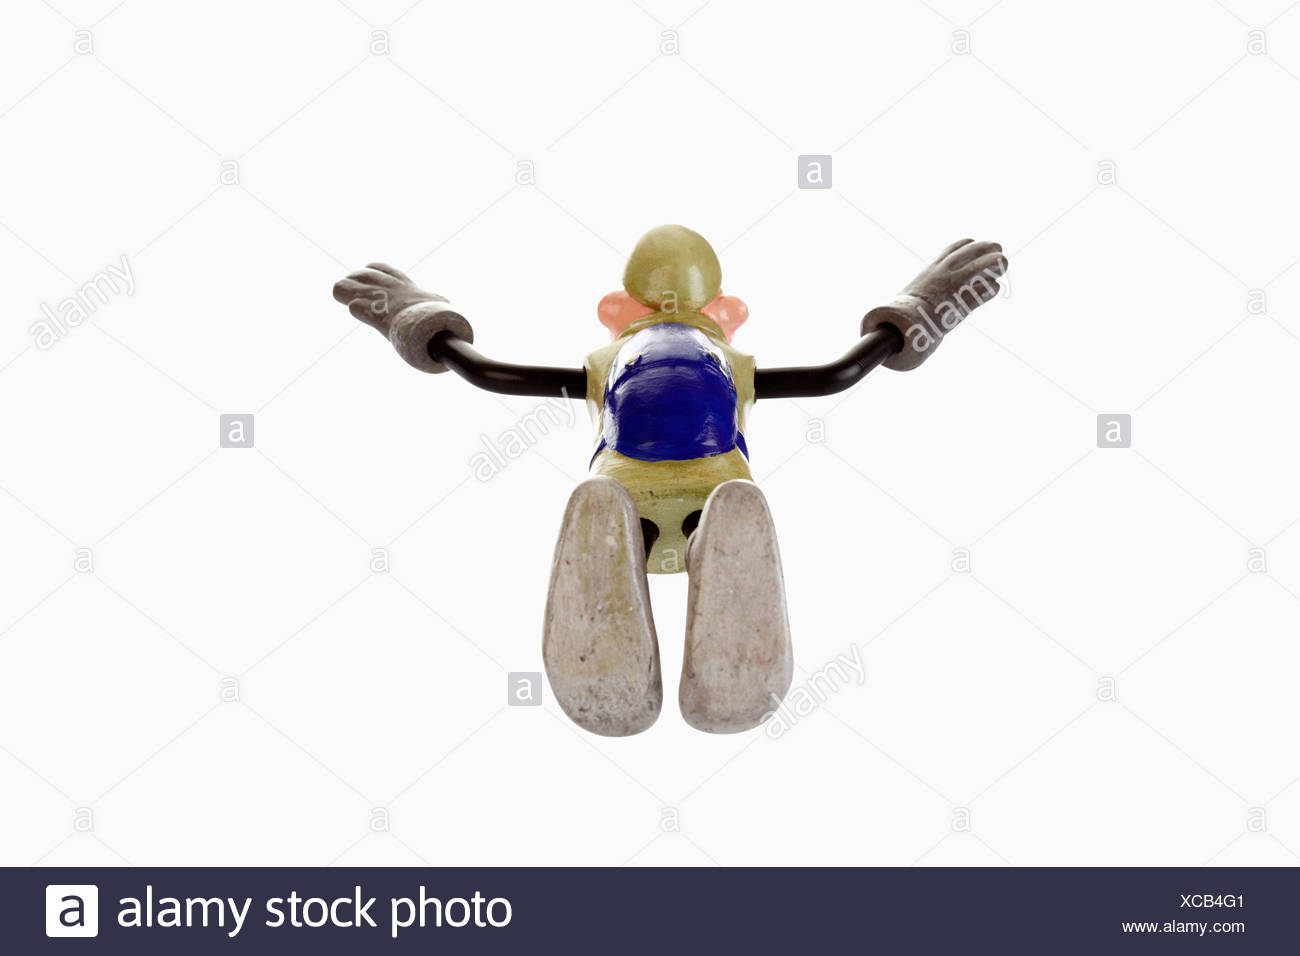 Cartoon character, basejumper in a nosedive, freefall - Stock Image